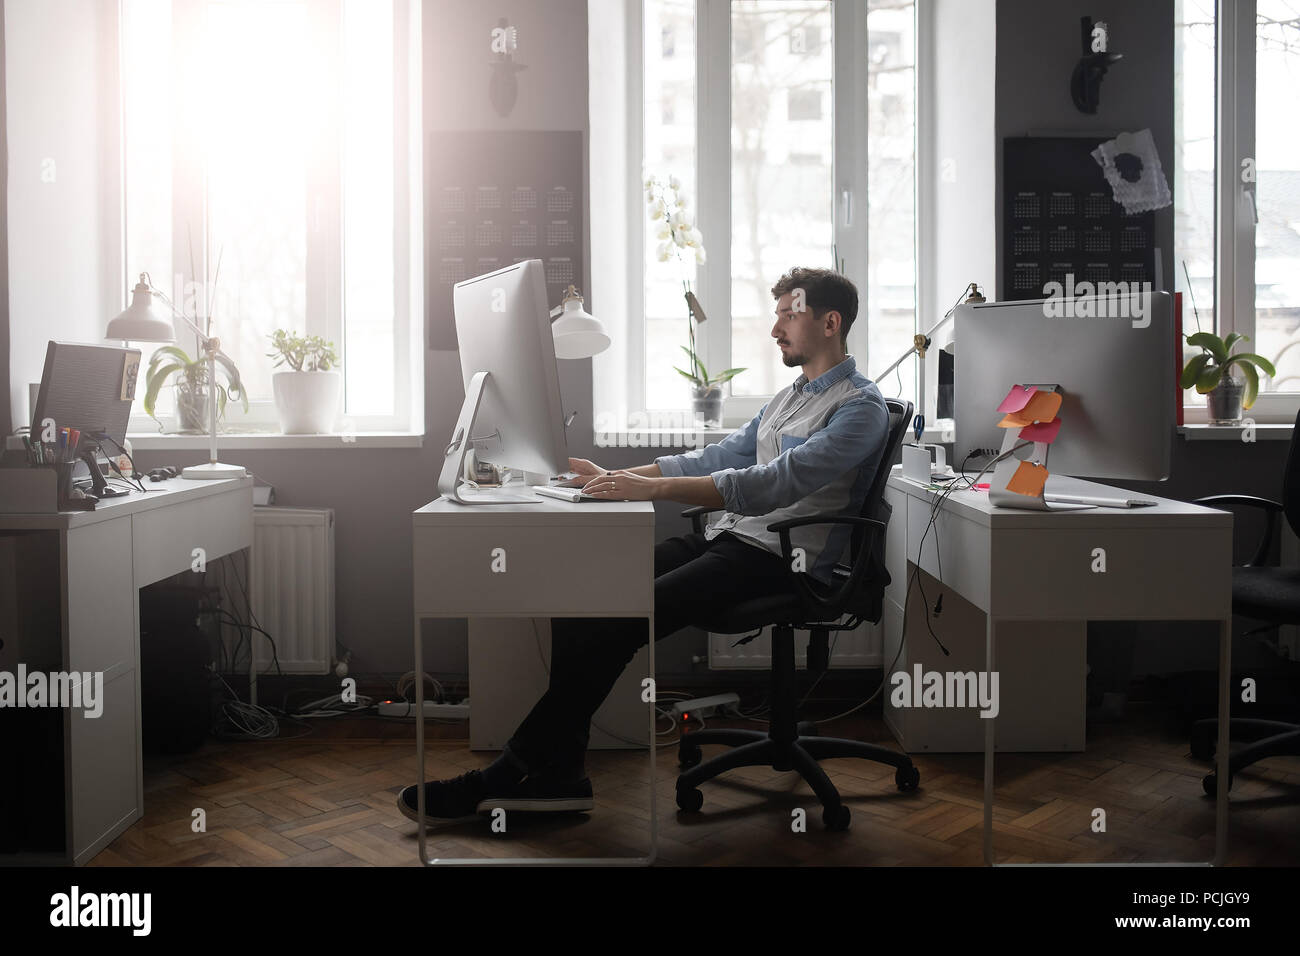 A man working in a modern design office  - Stock Image